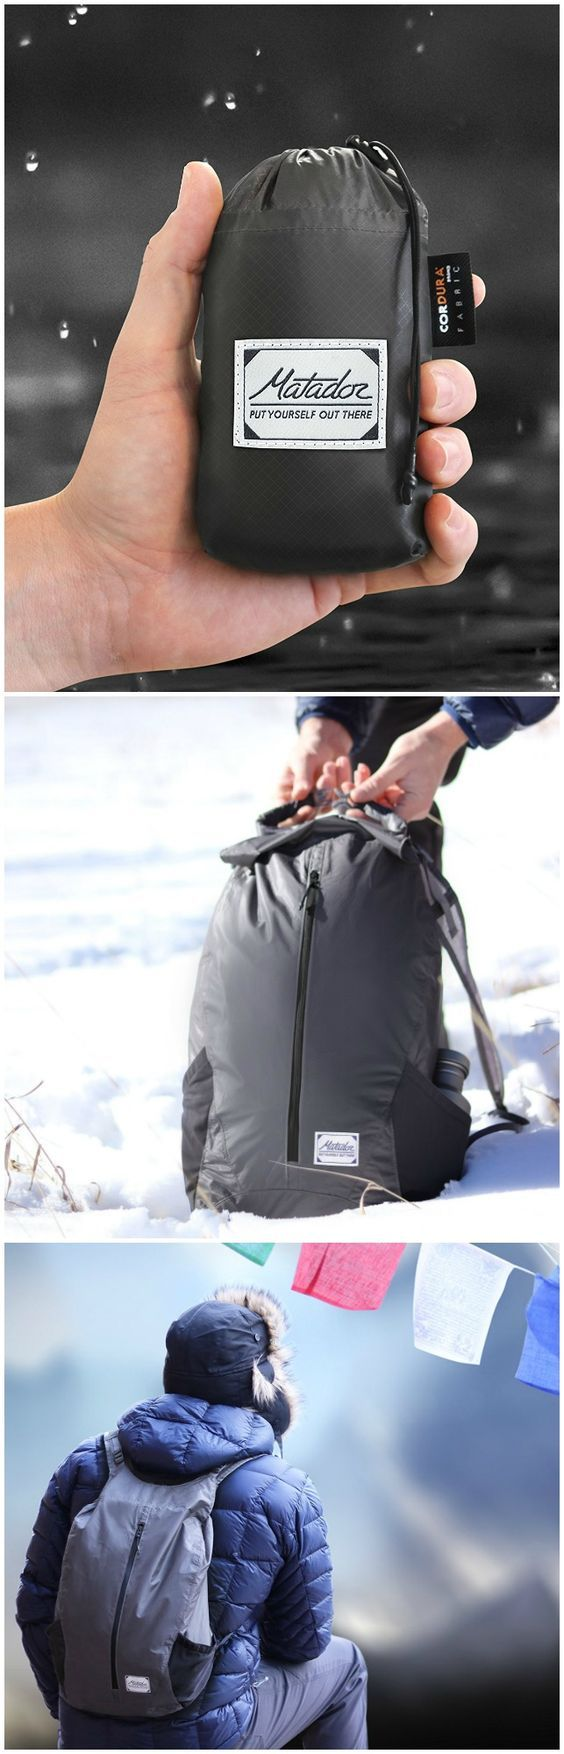 Matador FreeRain24 packs away to fit in the palm of your hand and unpacks into a 24 Liter backpack with a waterproof main compartment. @aegisgears